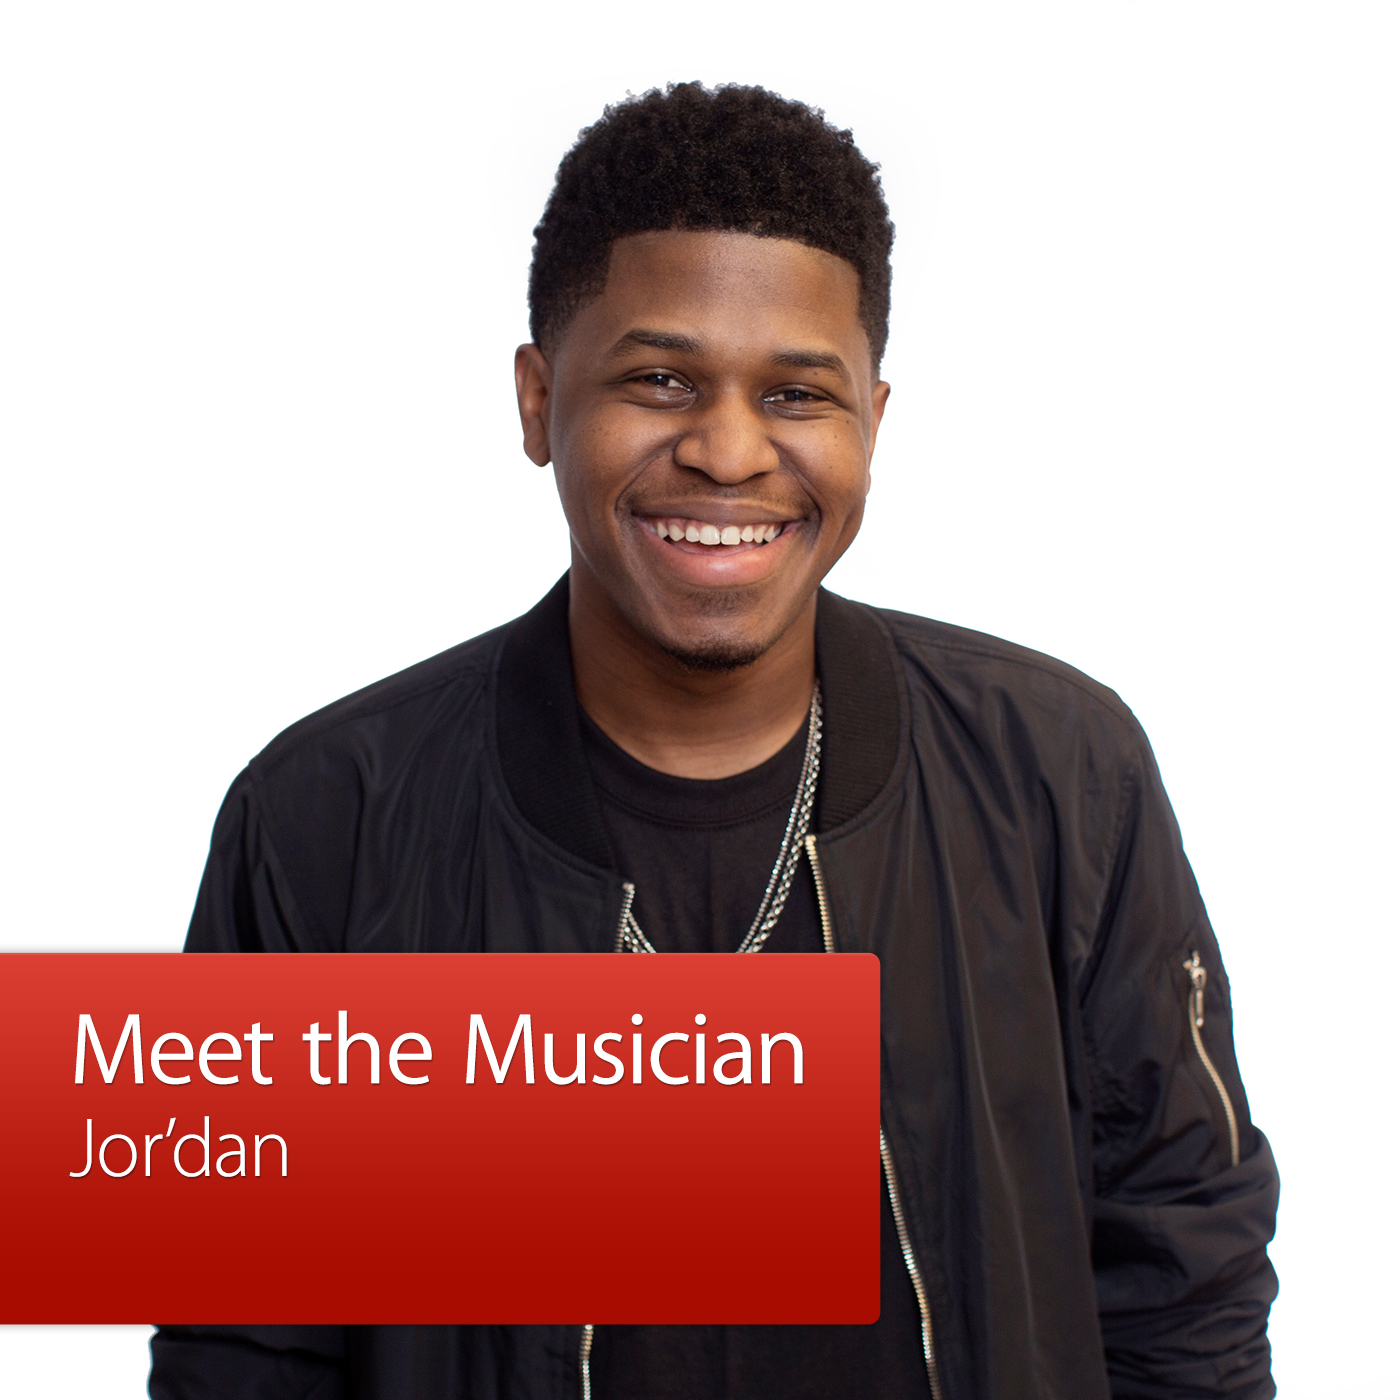 Jor'dan: Meet the Musician